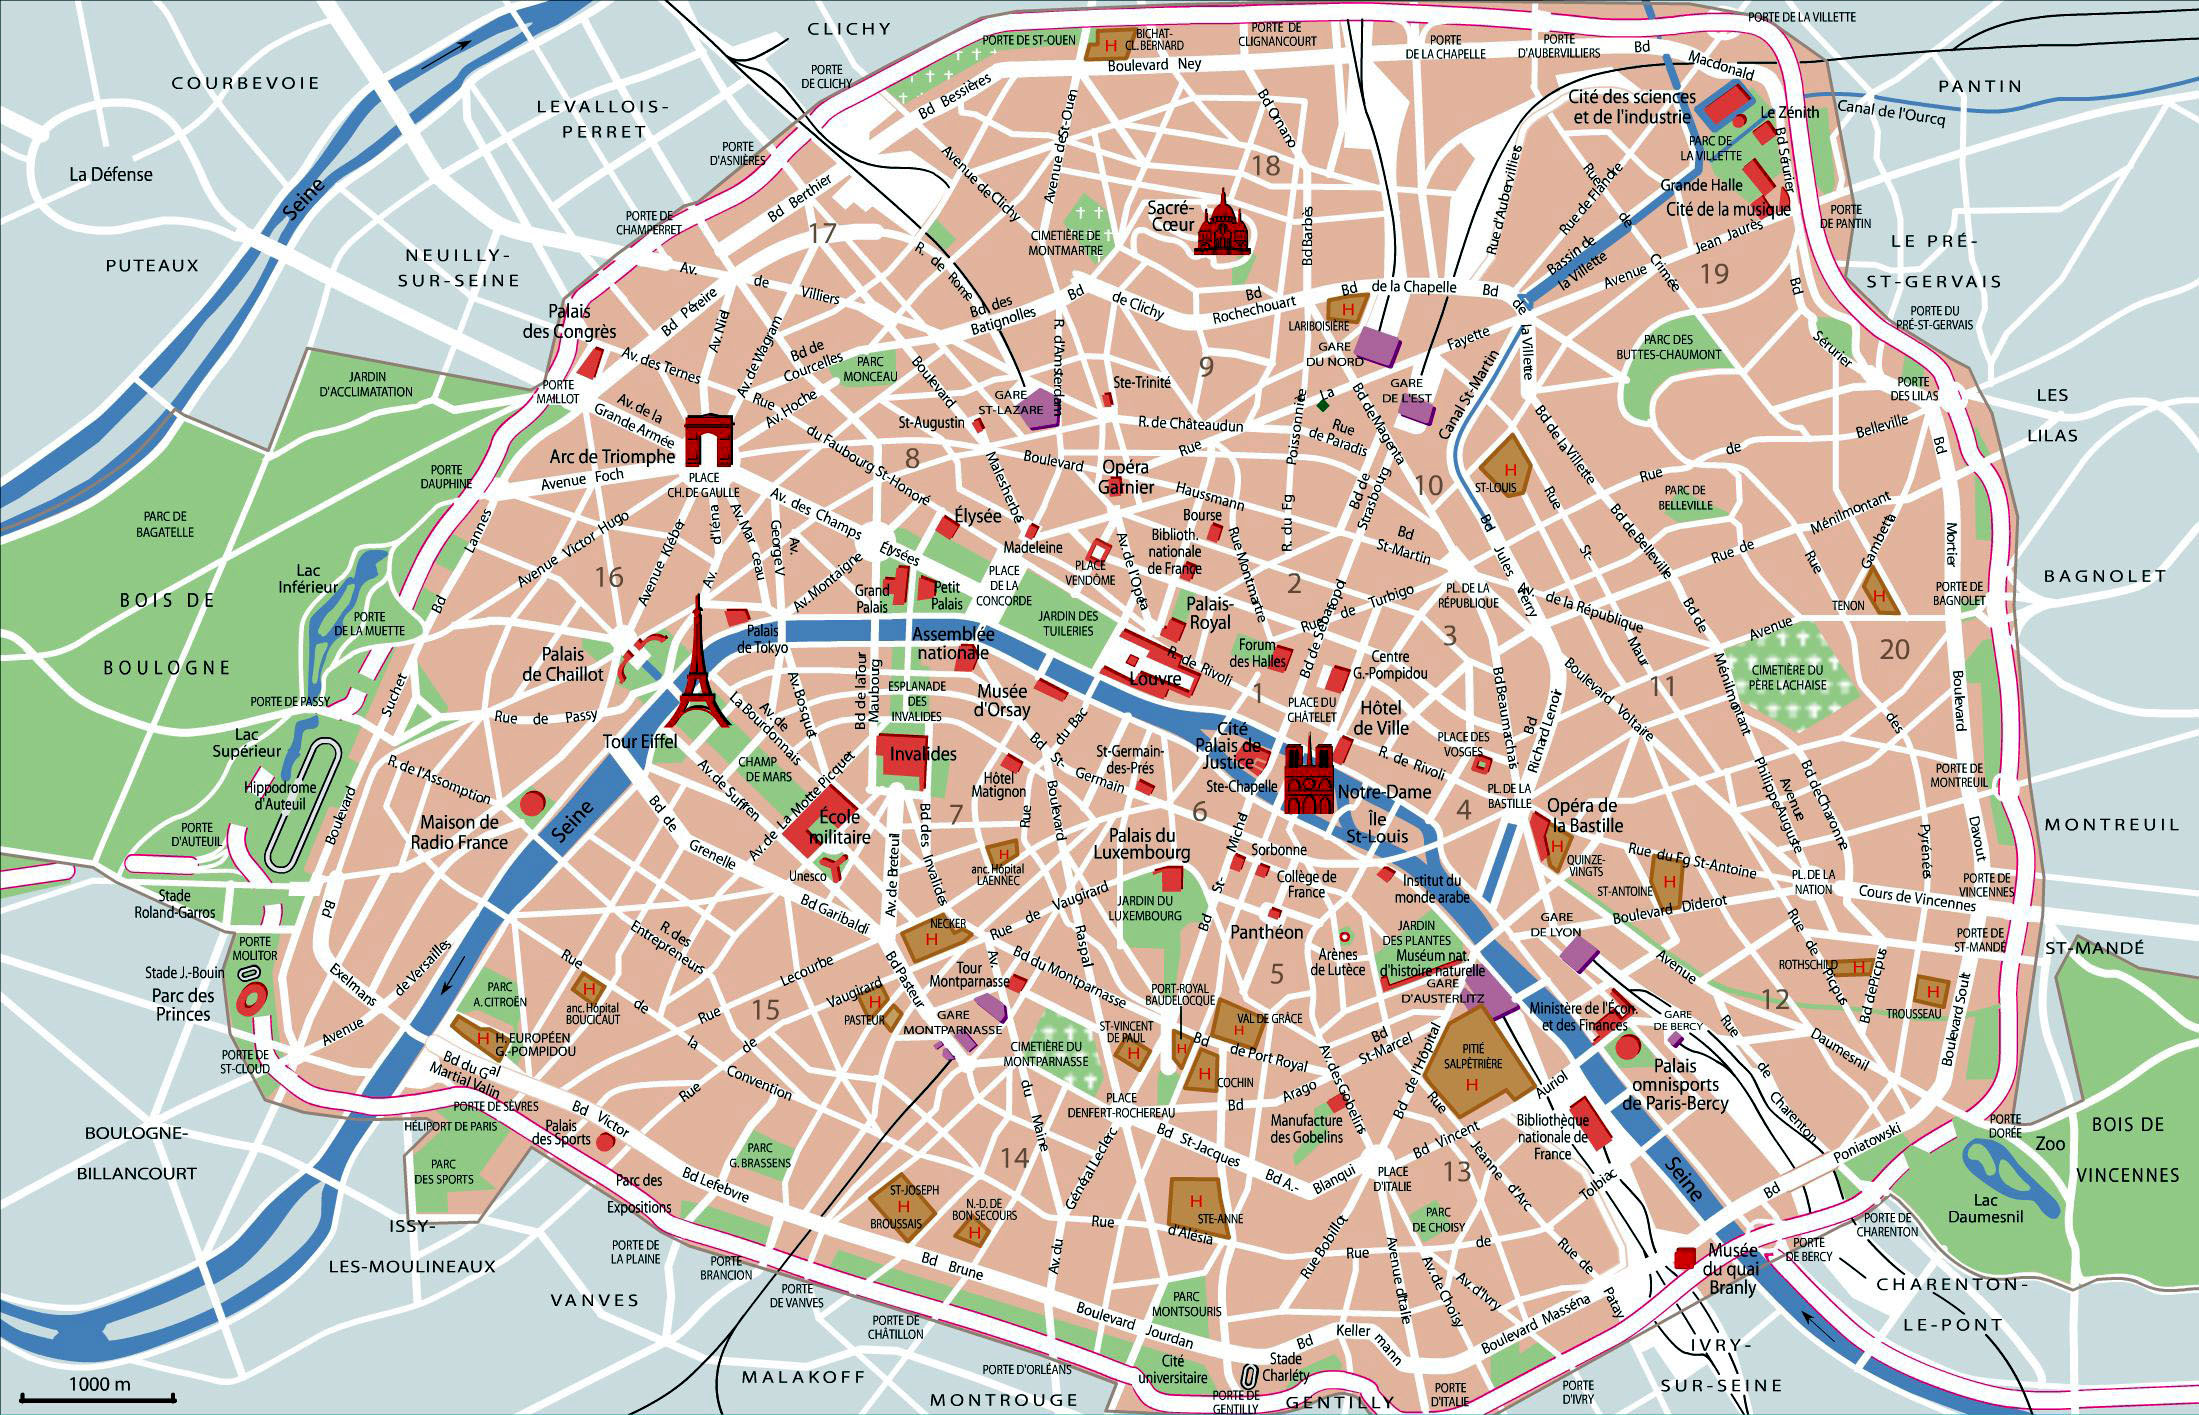 Paris map with top sights, shops, hotels. Paris map pdf.